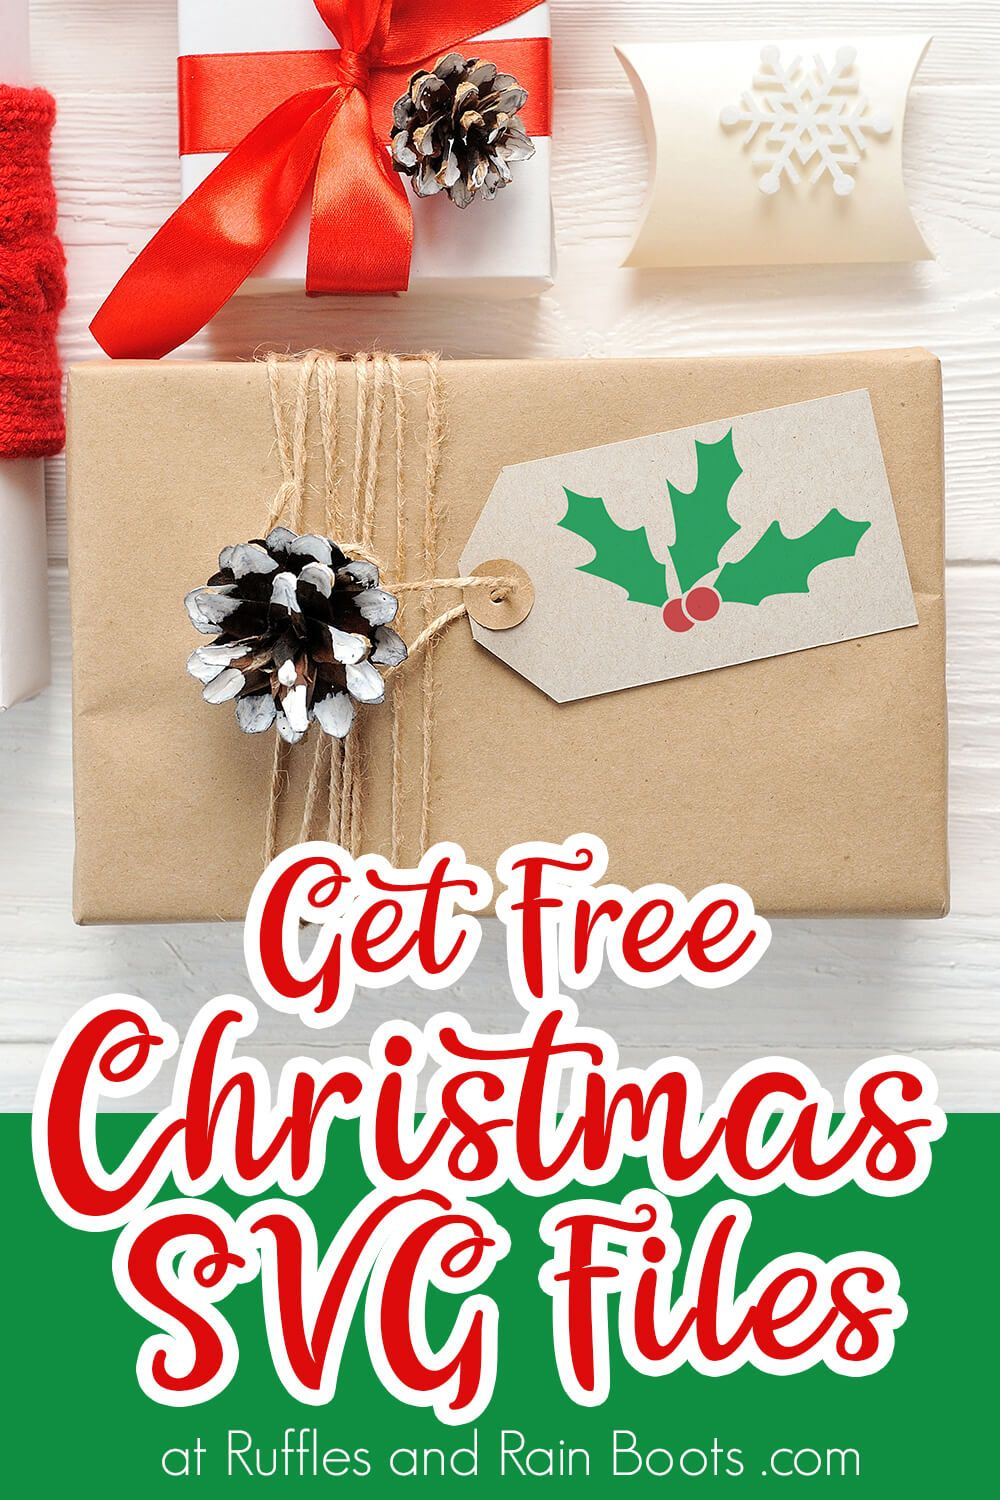 Make Personalized Gift Tags with this Free Holly Christmas